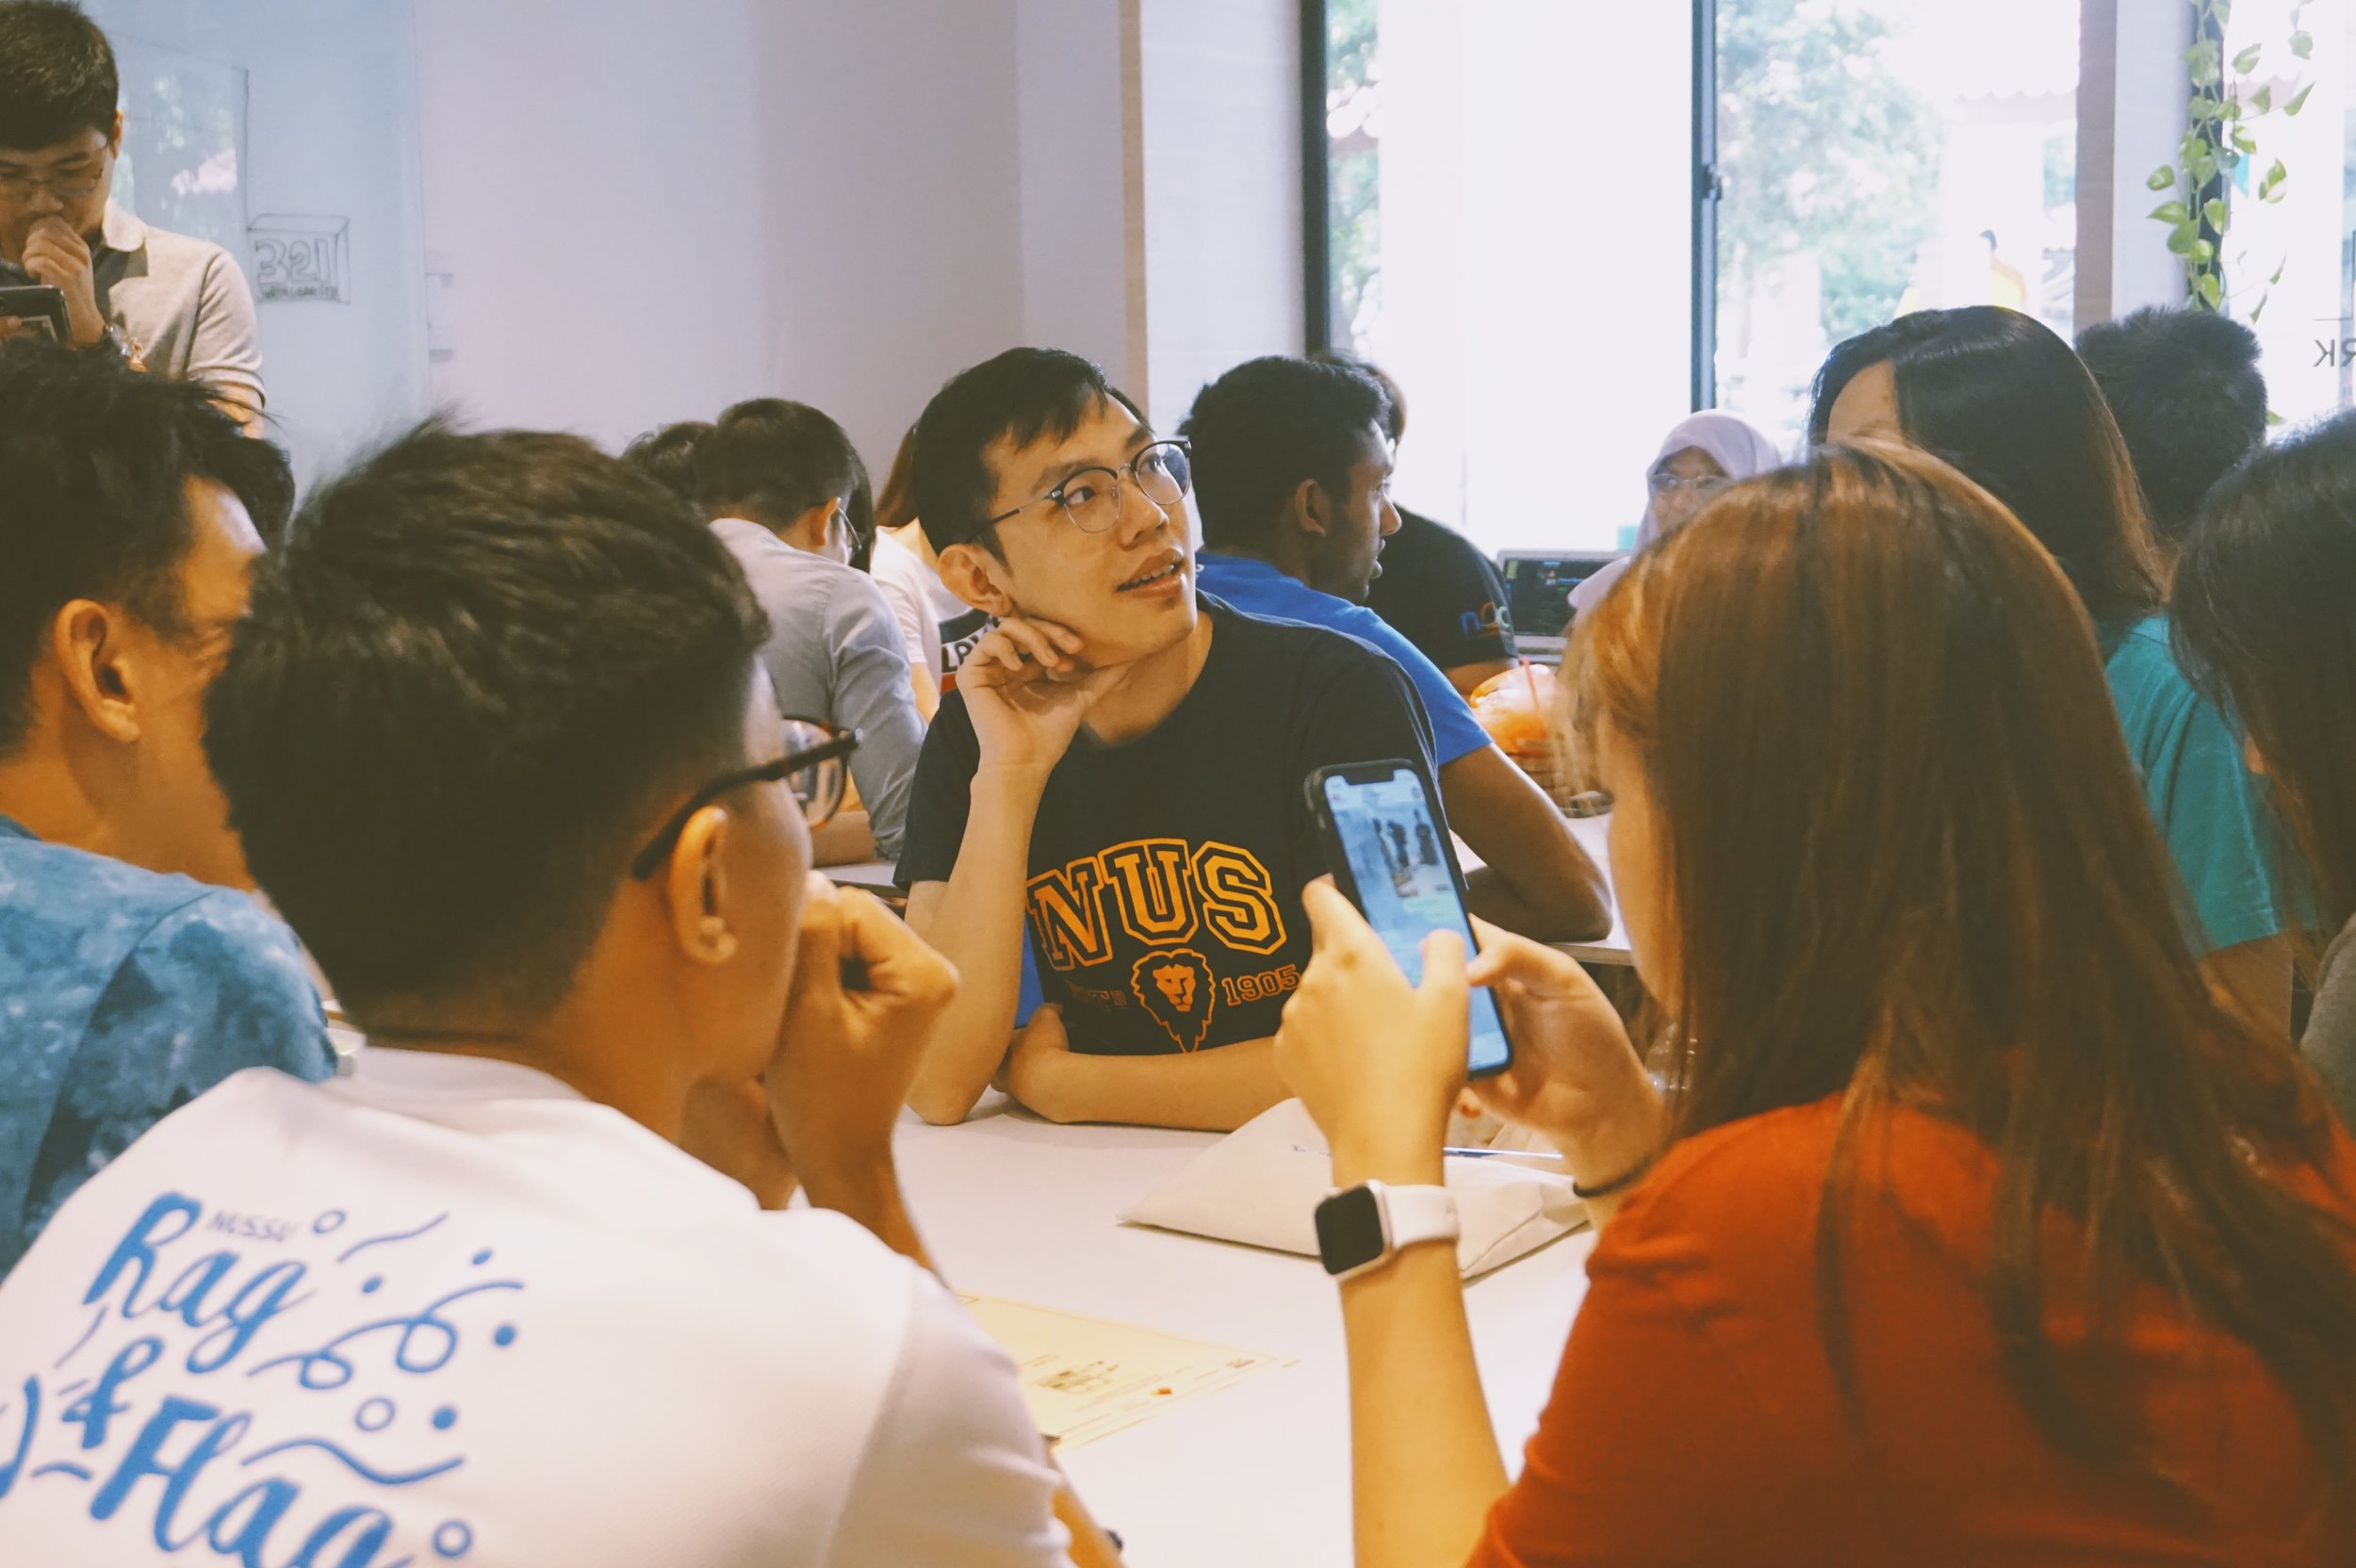 Bold's larger vision has always been to create a platform for young people to discover autonomy, mastery and purpose such that they could create a new language and effect for social impact. That to us, in summary, is also what we see brings them forth as active citizens in the future of work.